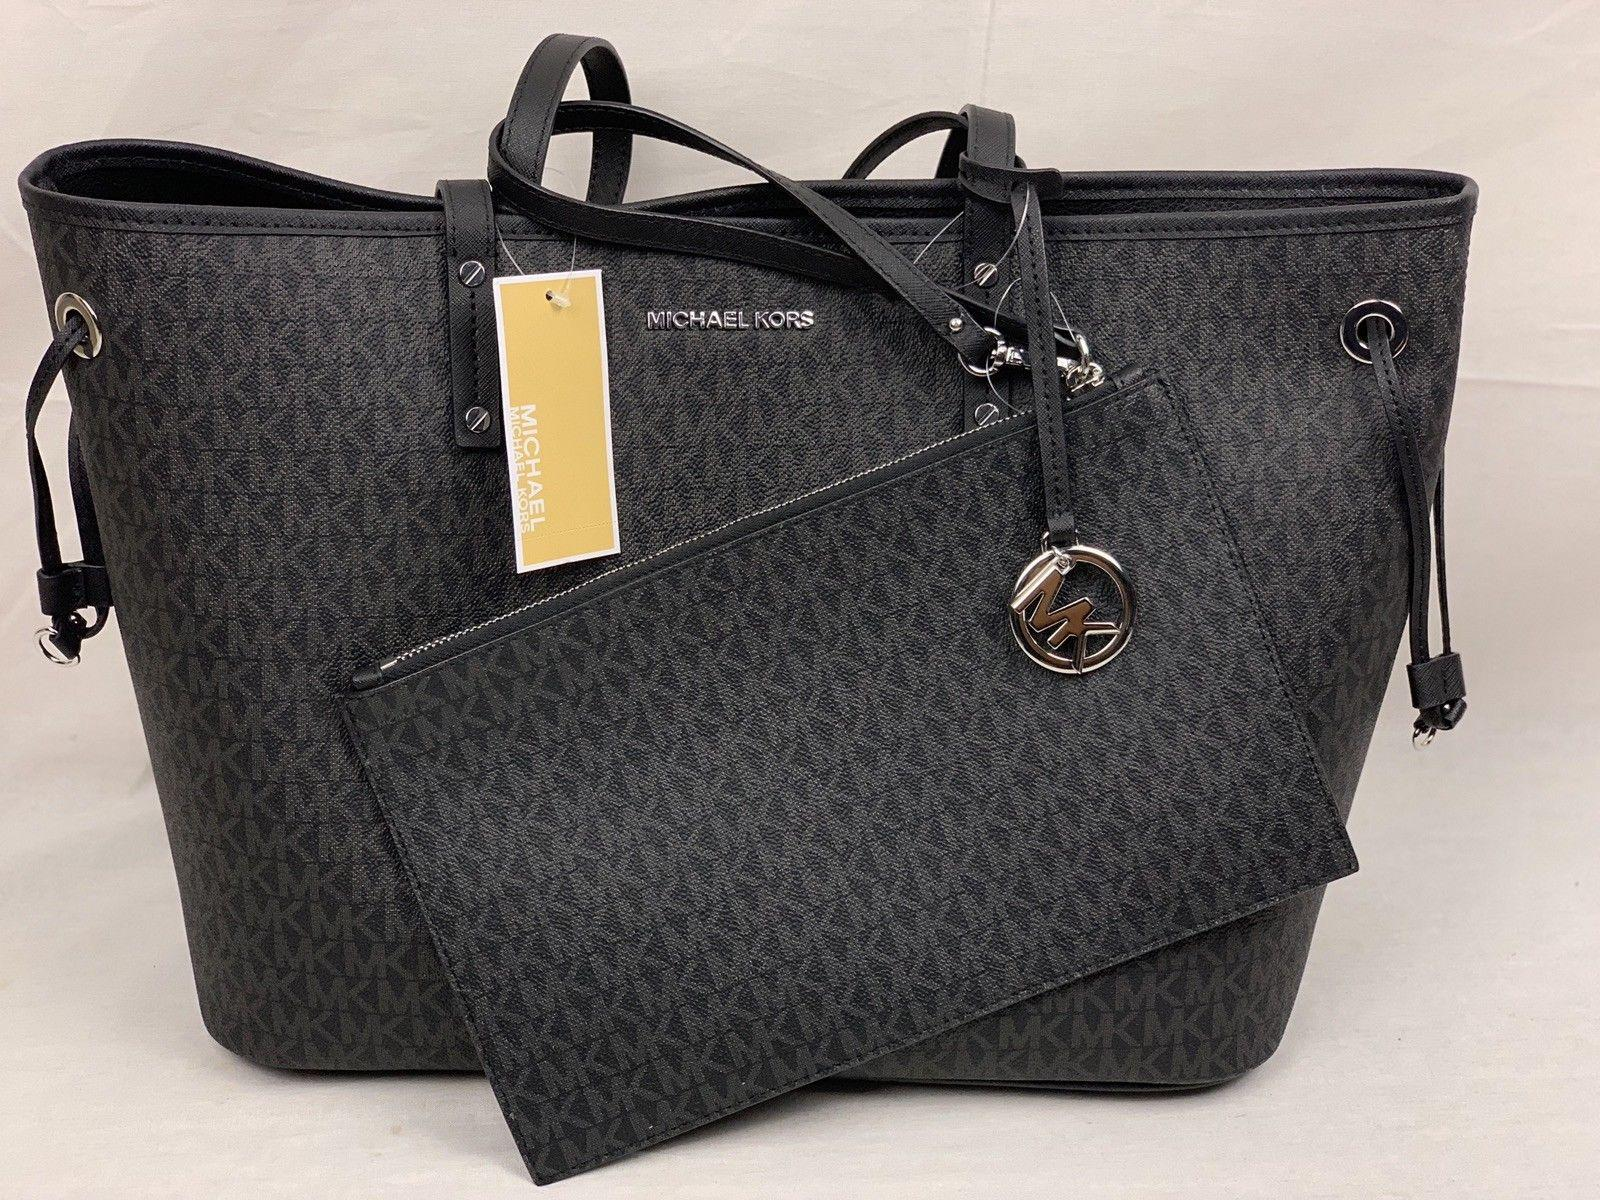 4efaa8075726 ... netherlands authentic michael kors jet set carryall signature black tote  3b69a 4448a